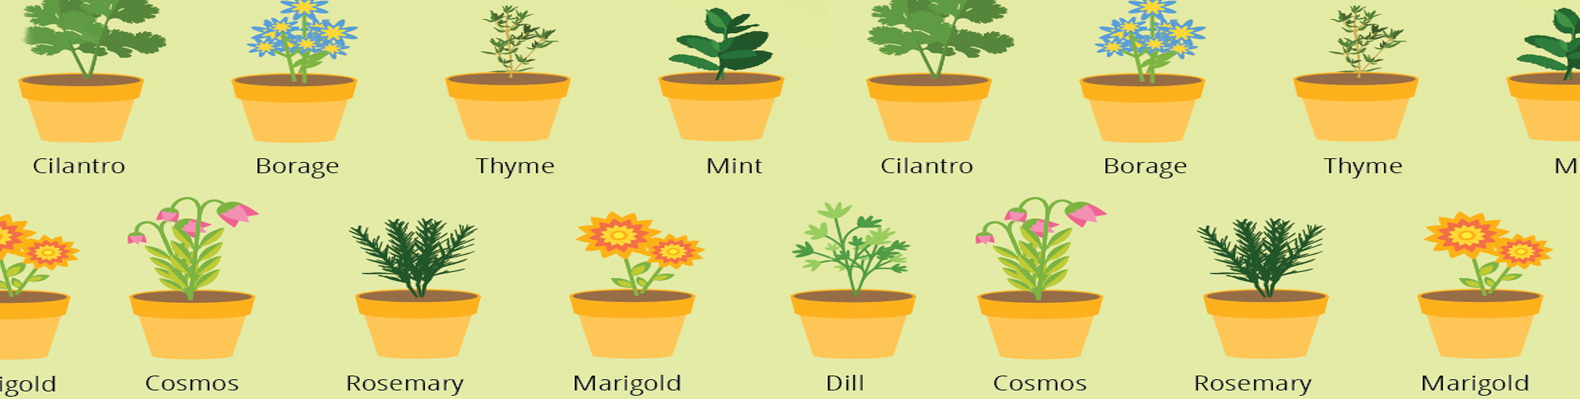 5 Methods To Get Rid Of Garden Pests Without Harmful Chemicals.